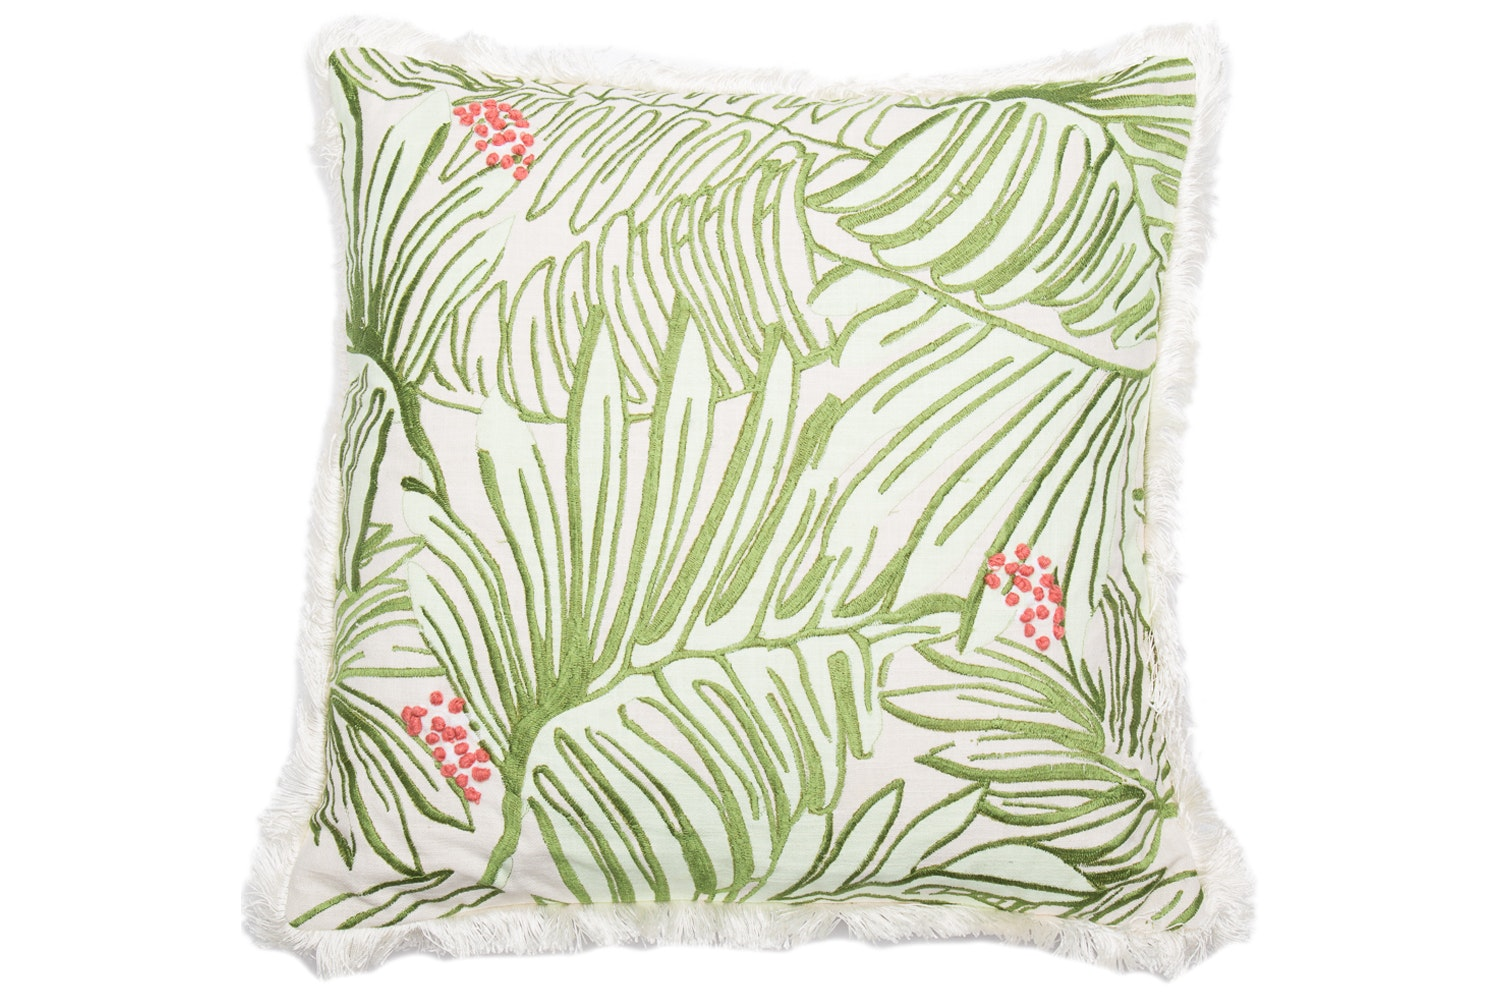 Embroidered French Knot  And Fringe Trim Cushion